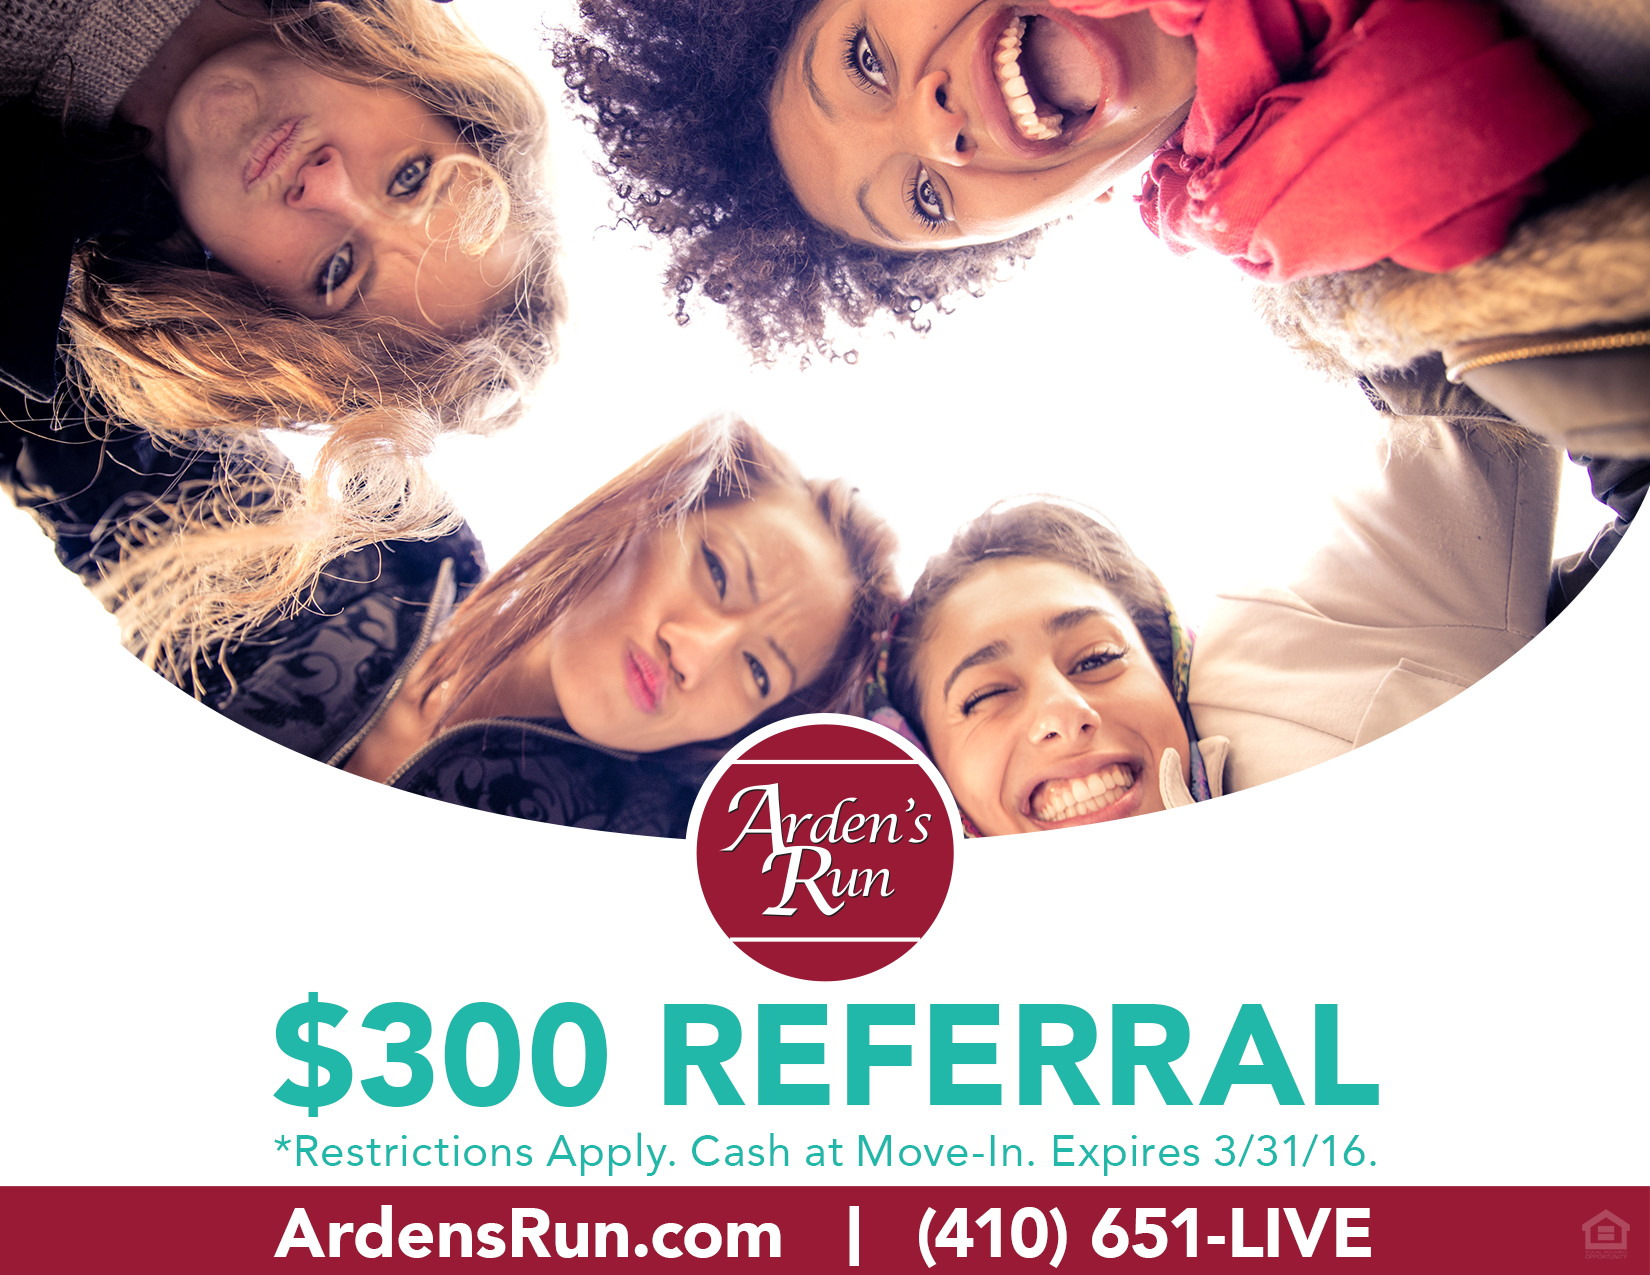 Arden's Run $500 Off  and Referral; $300